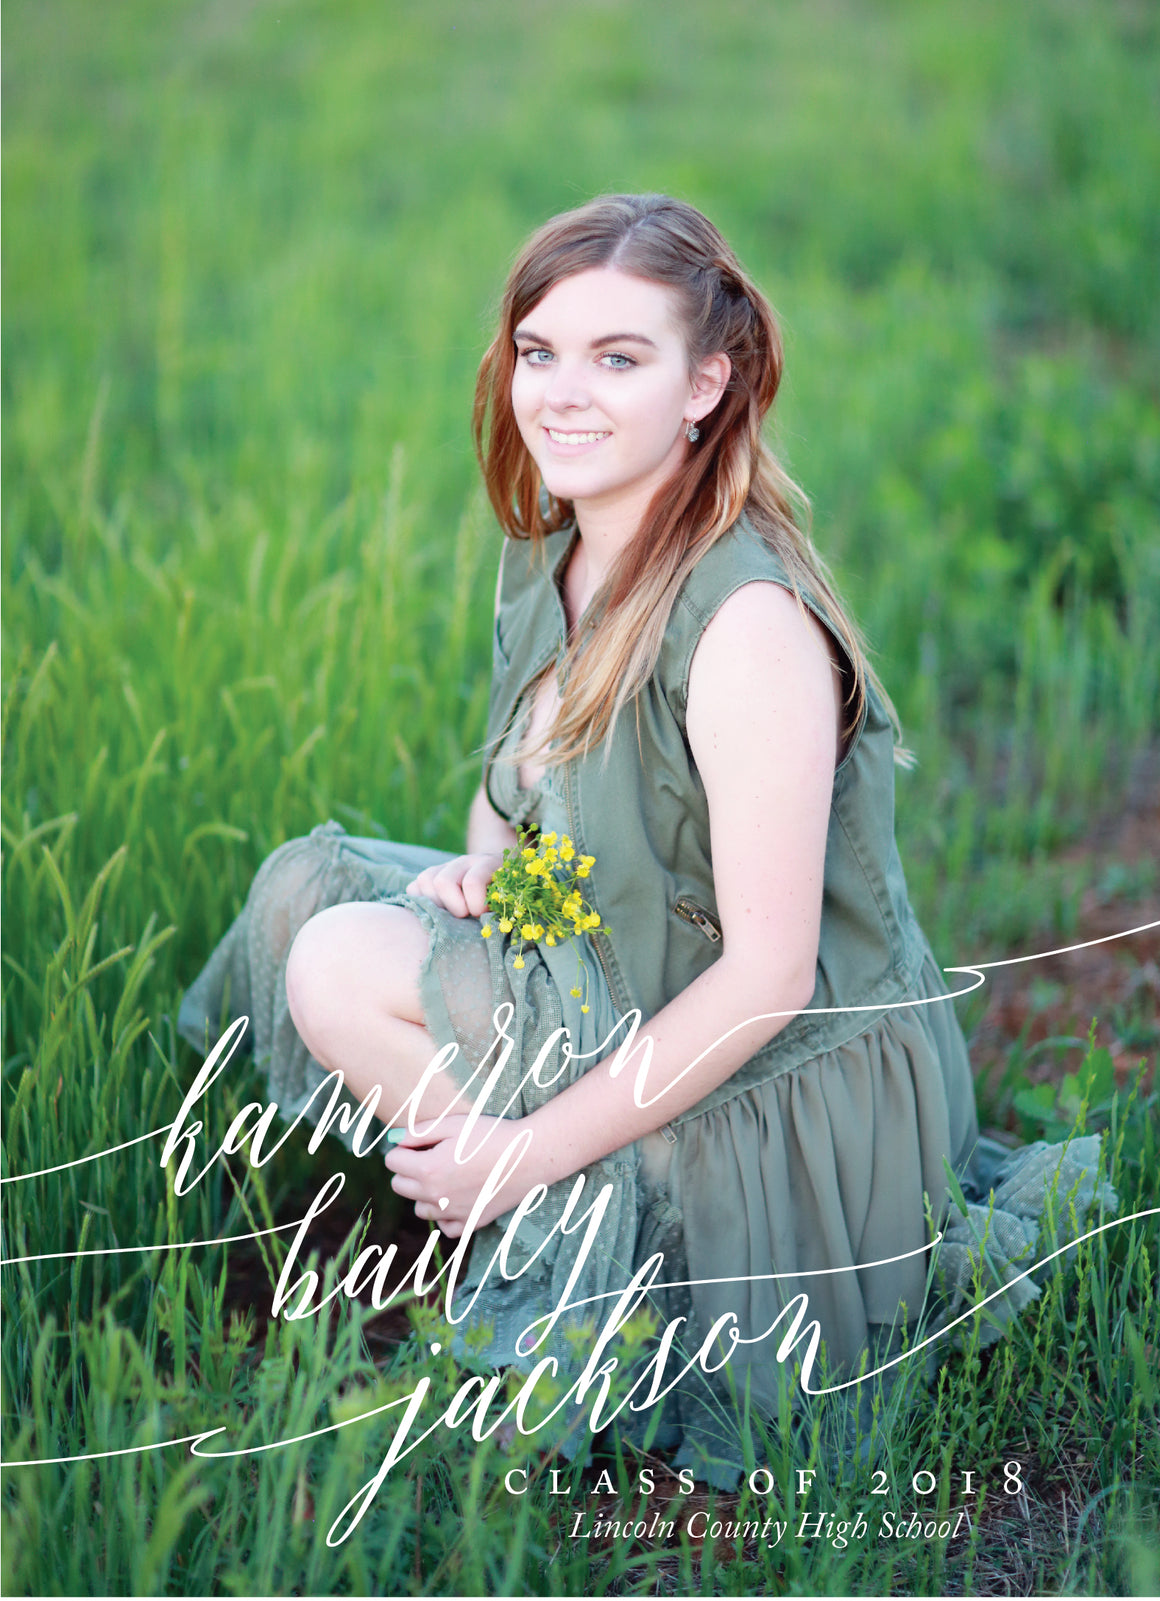 Kameron Graduation Announcement